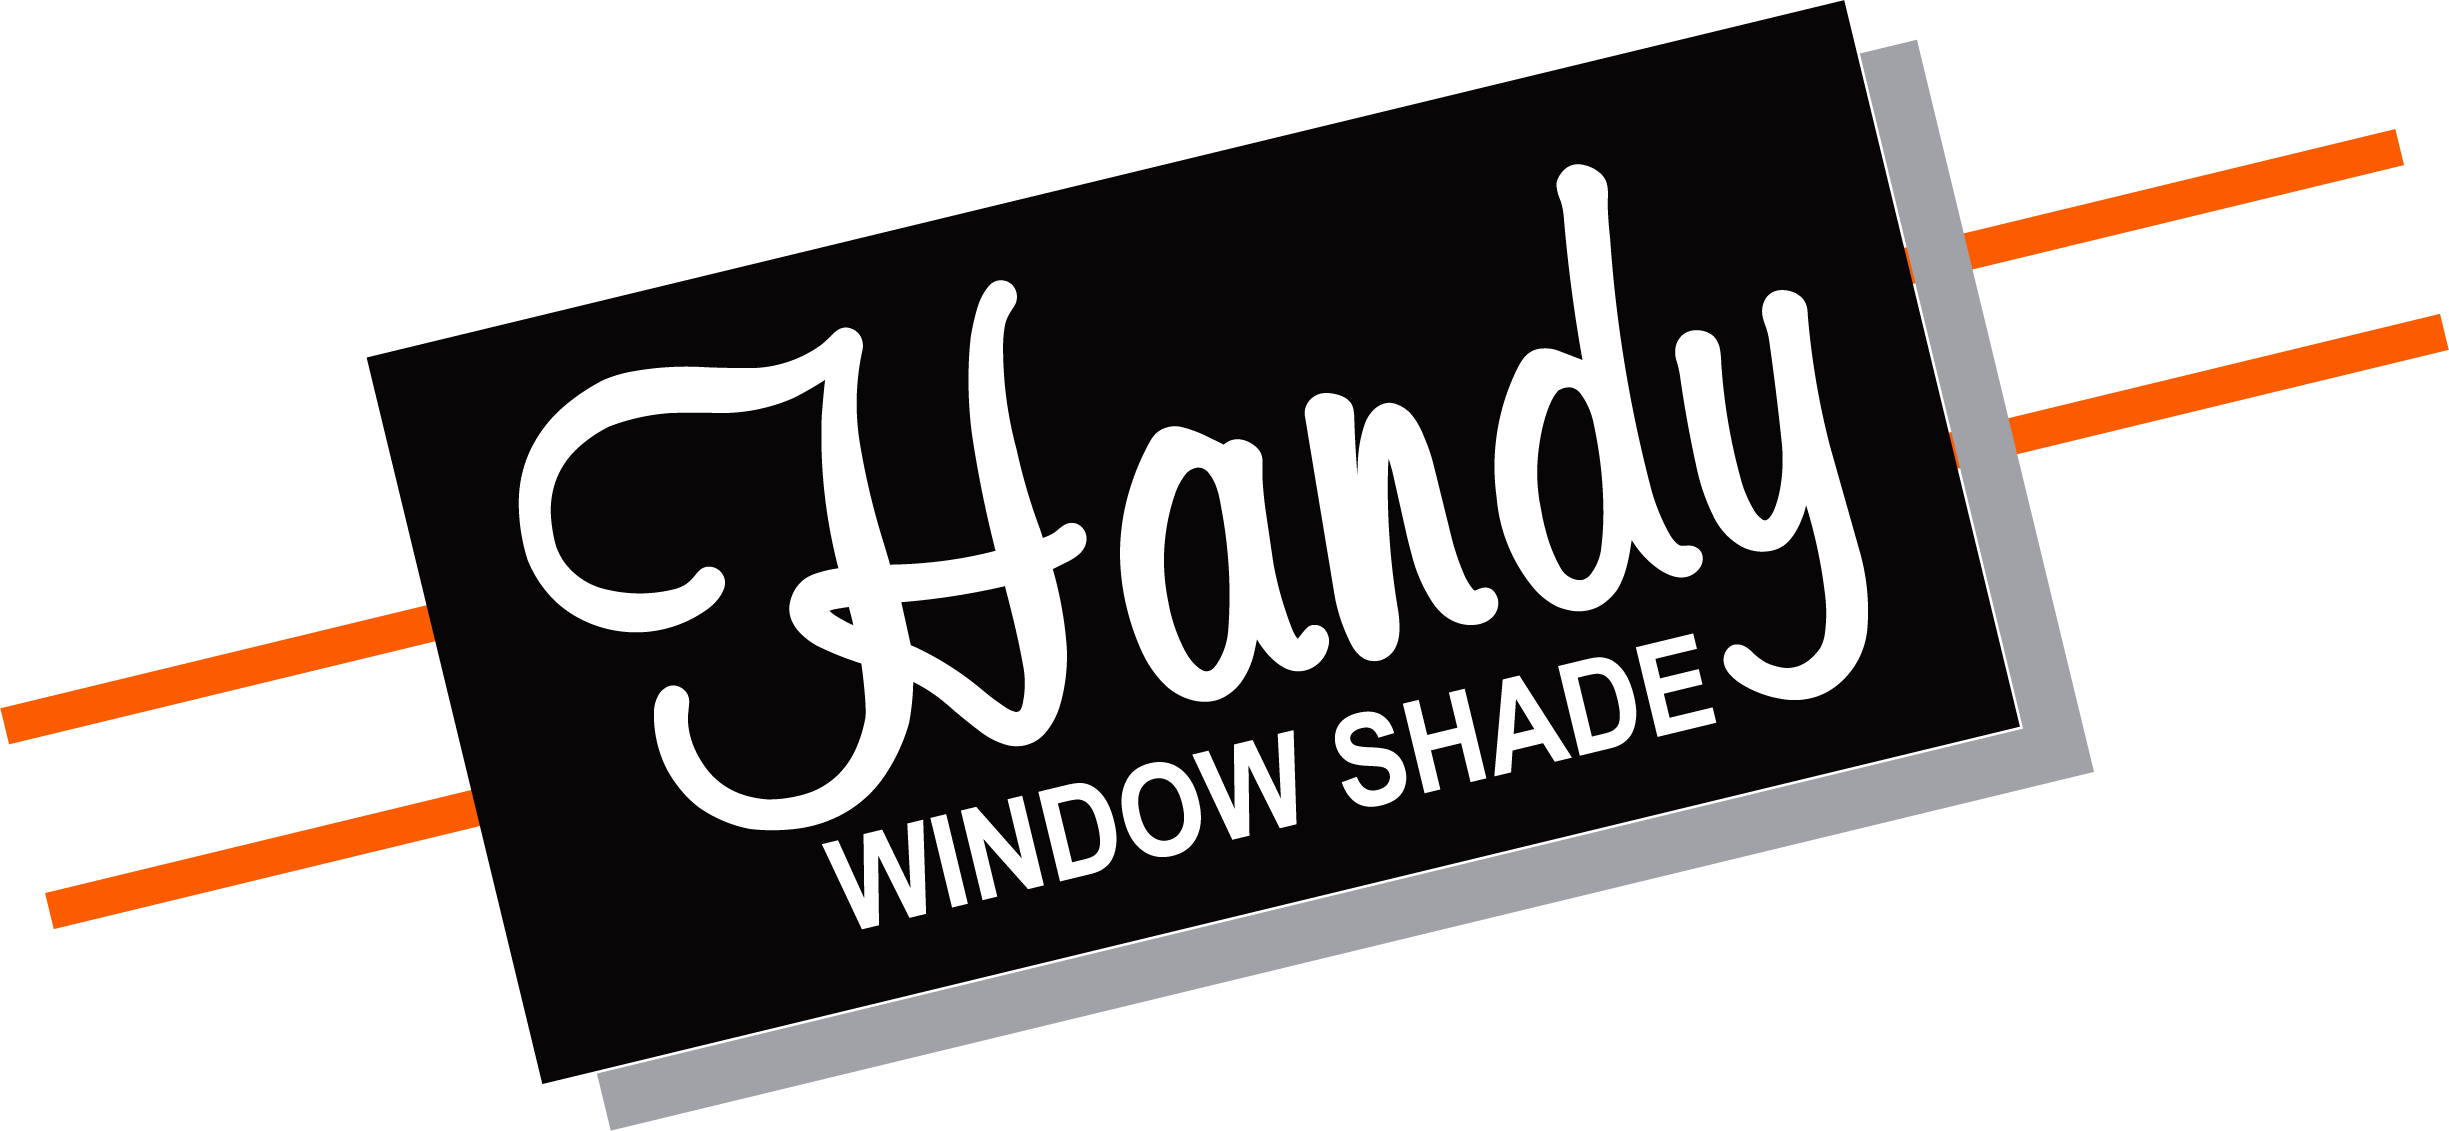 Handy Window Shade - Cincinnati